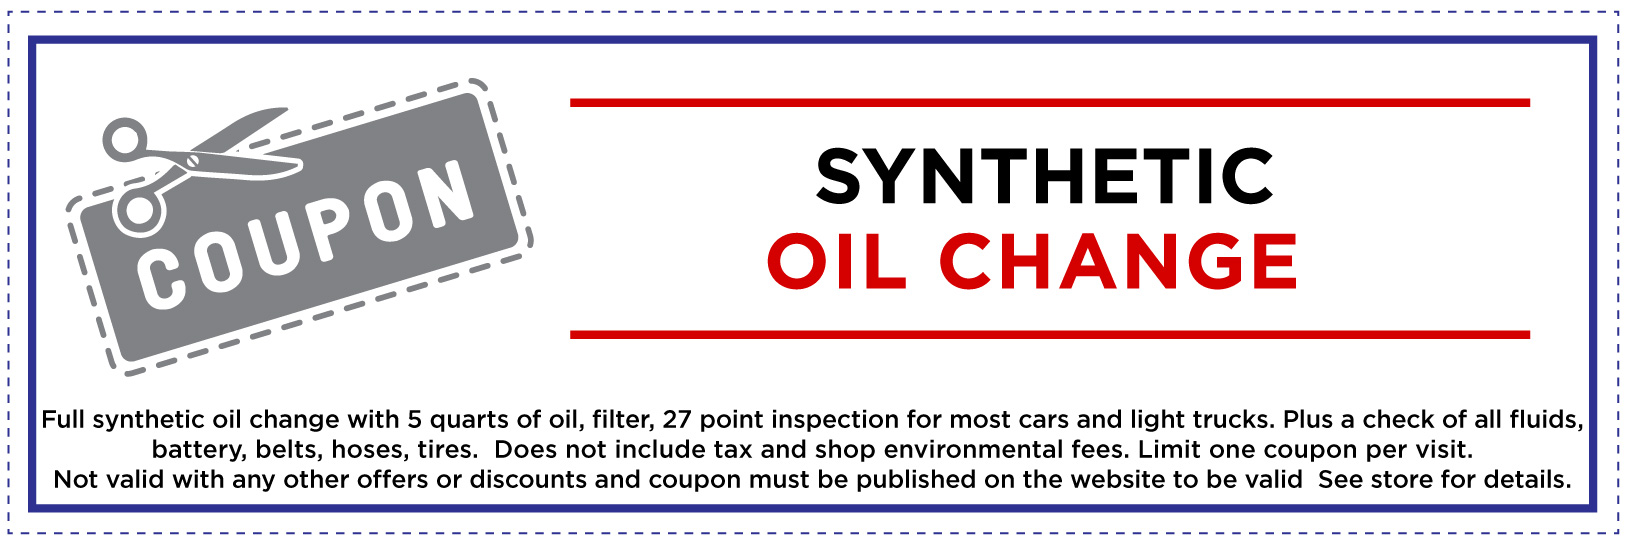 Synthetic Oil Change Coupon for Website